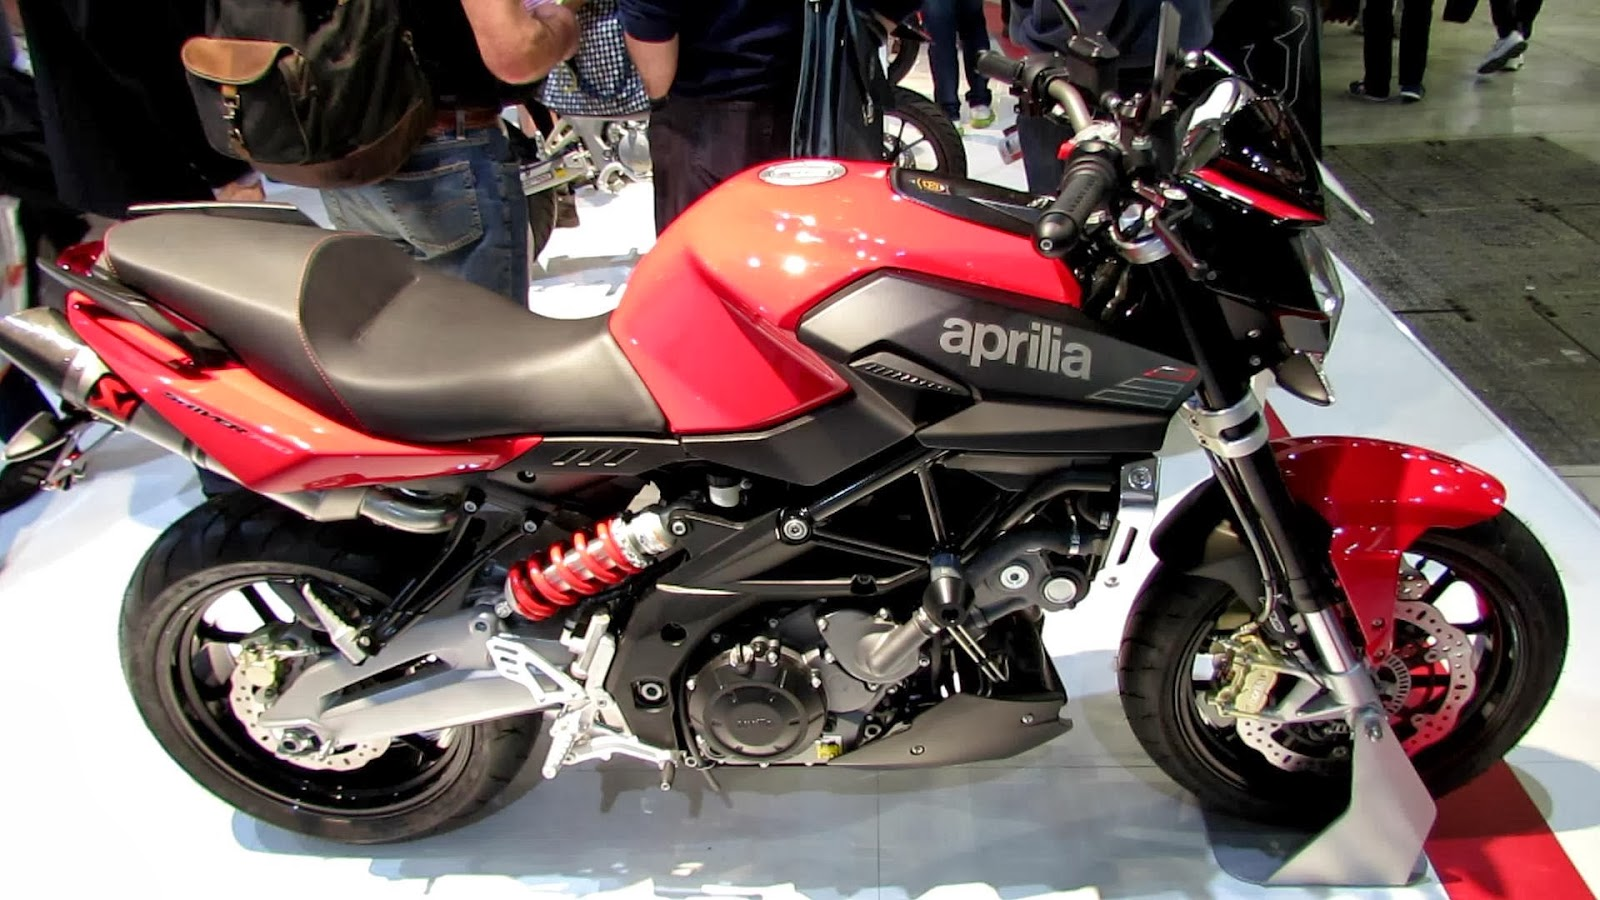 Aprilia Shiver 750 Sport Motorcycle HD Wallpapers